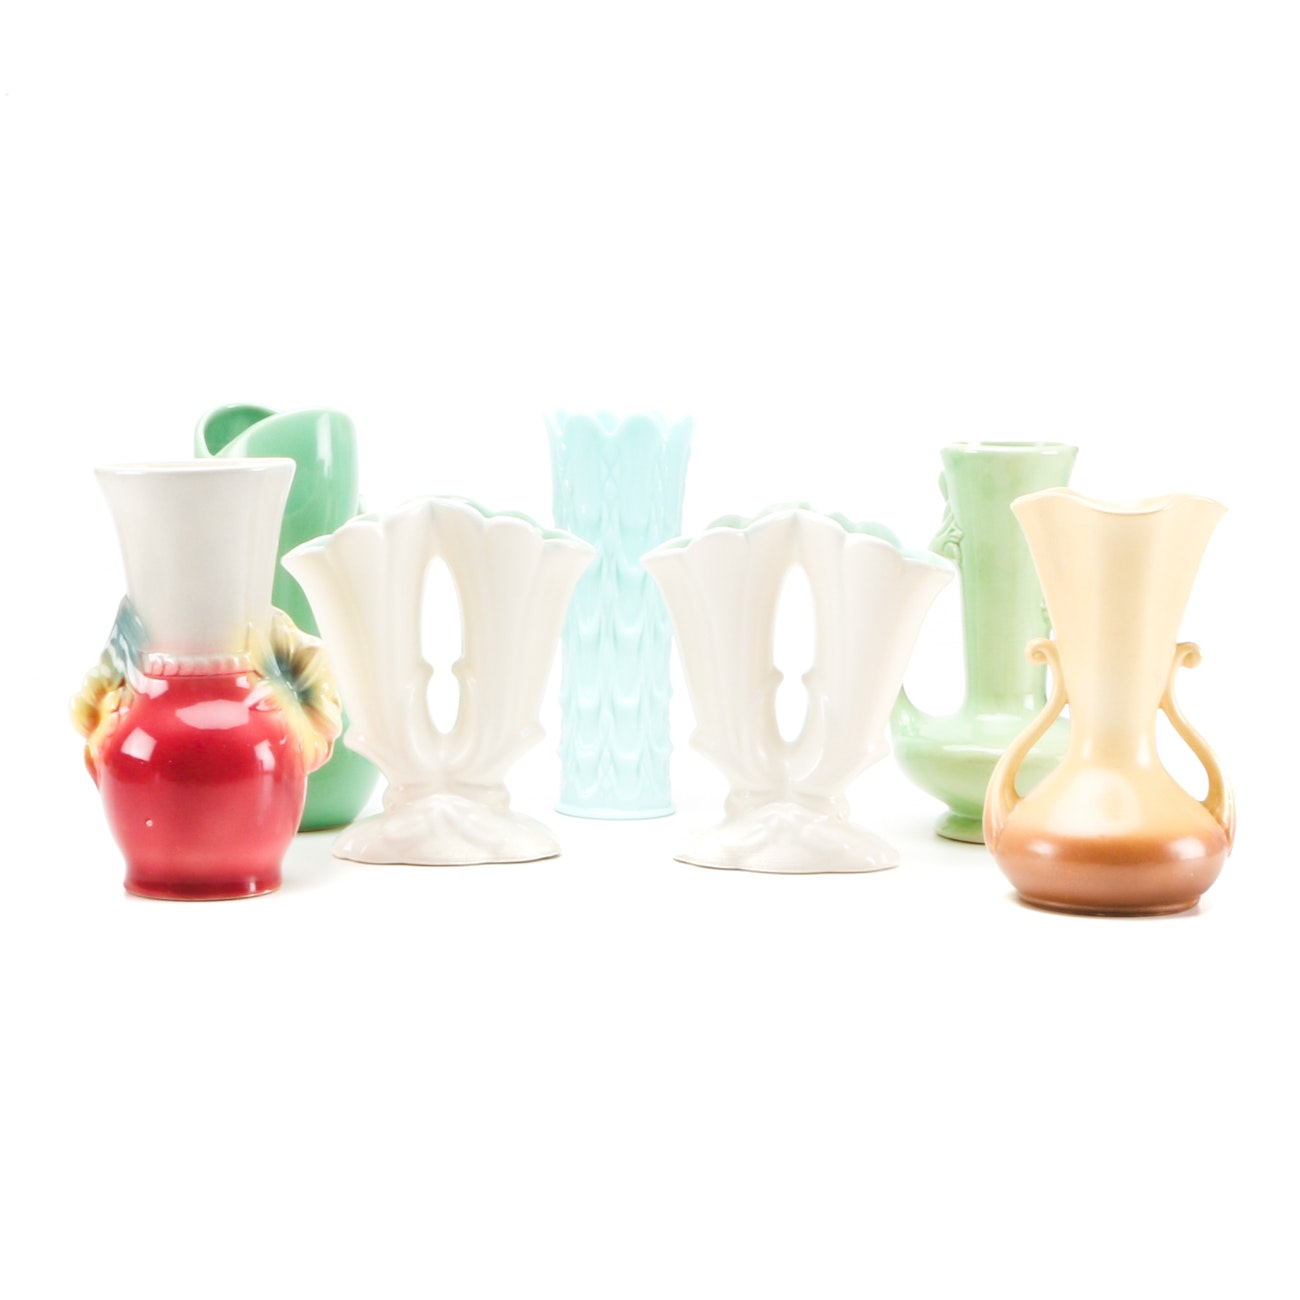 Mid-Century Art Pottery and Glass Vases featuring Rumrill and Royal Copely